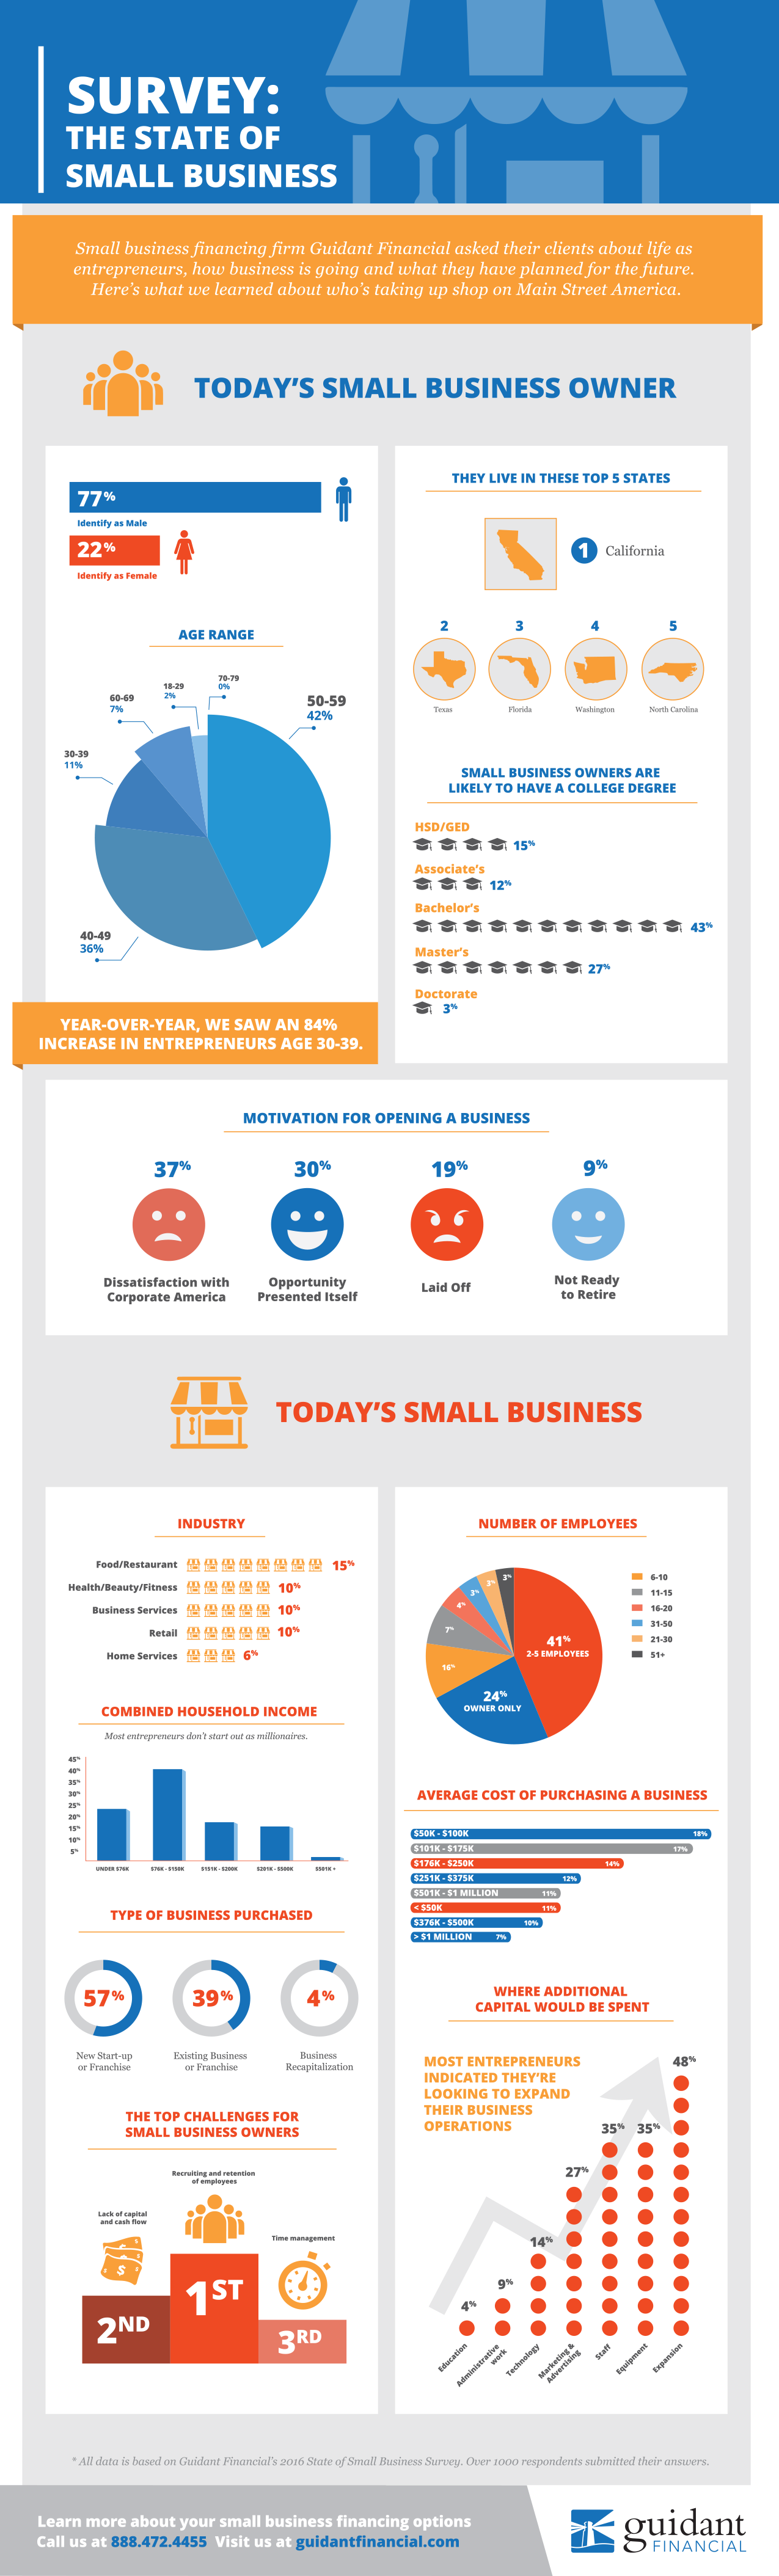 Guidant Financial's 2017 Small Business Trends Infographic